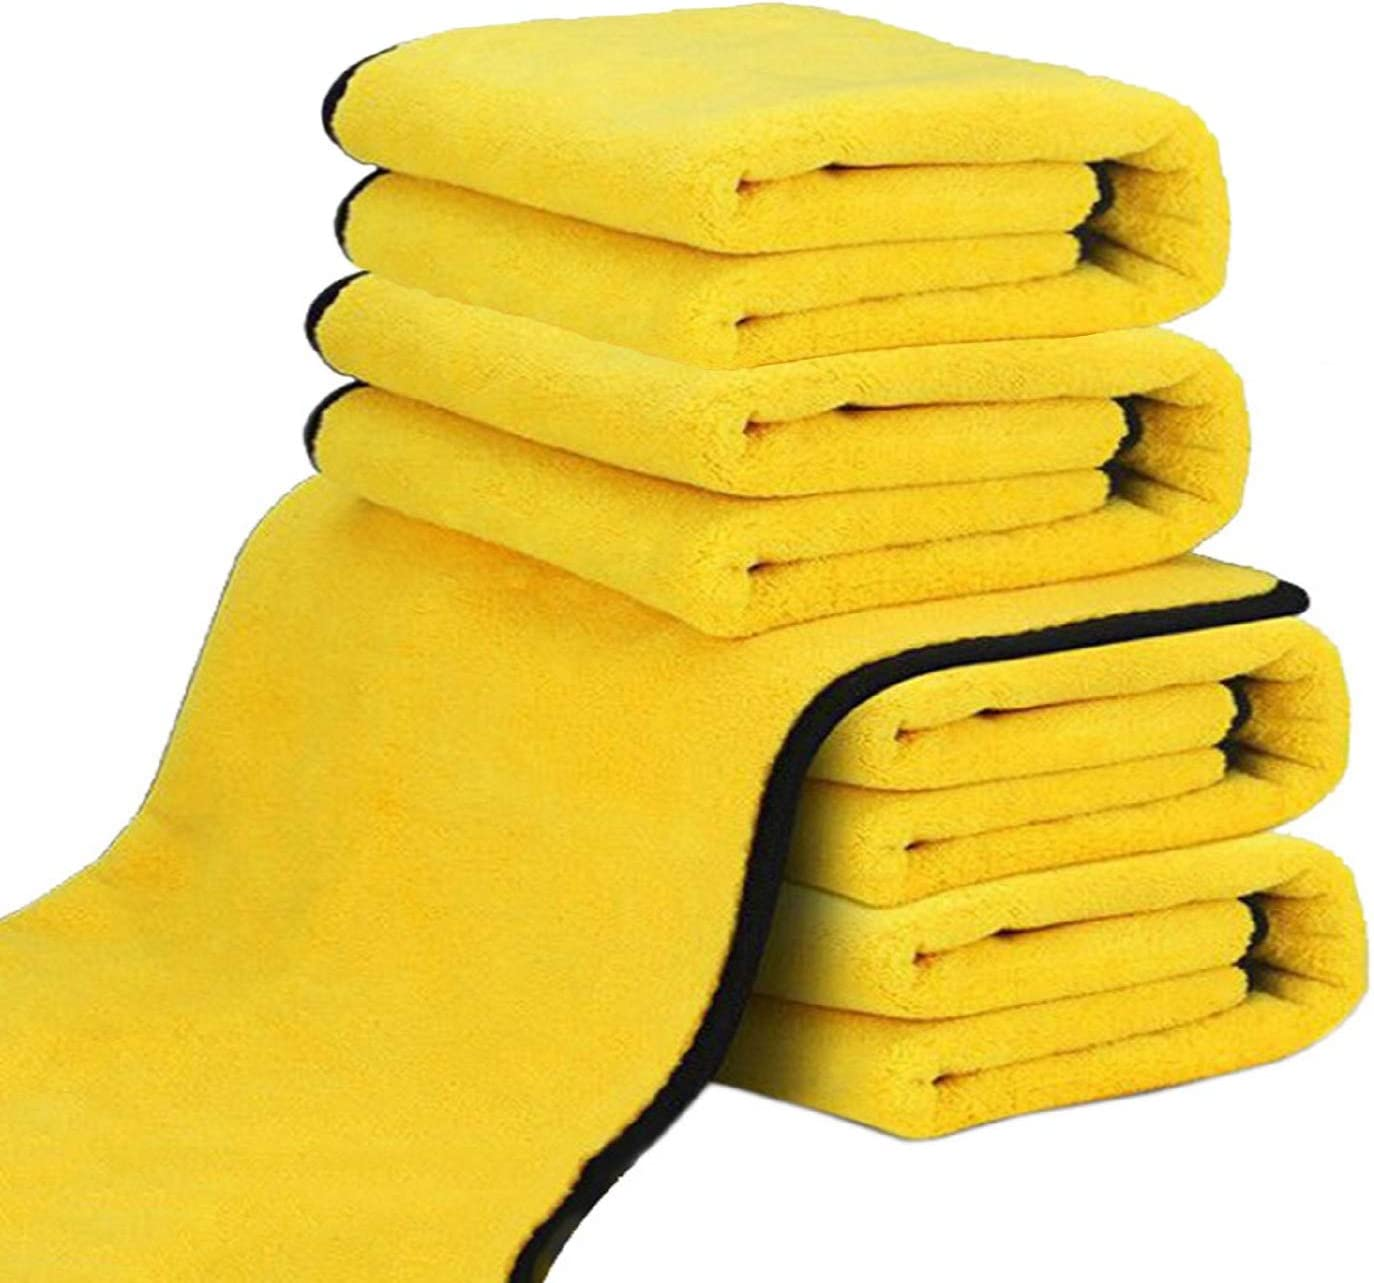 12 in. x 12 in. Drying Detailing 5PCS Extra Thick Micro Fibers Towels Super Absorbent Microfiber Towels for Cars//Detailing//Interior Lint Free Drying Towel Car Washing